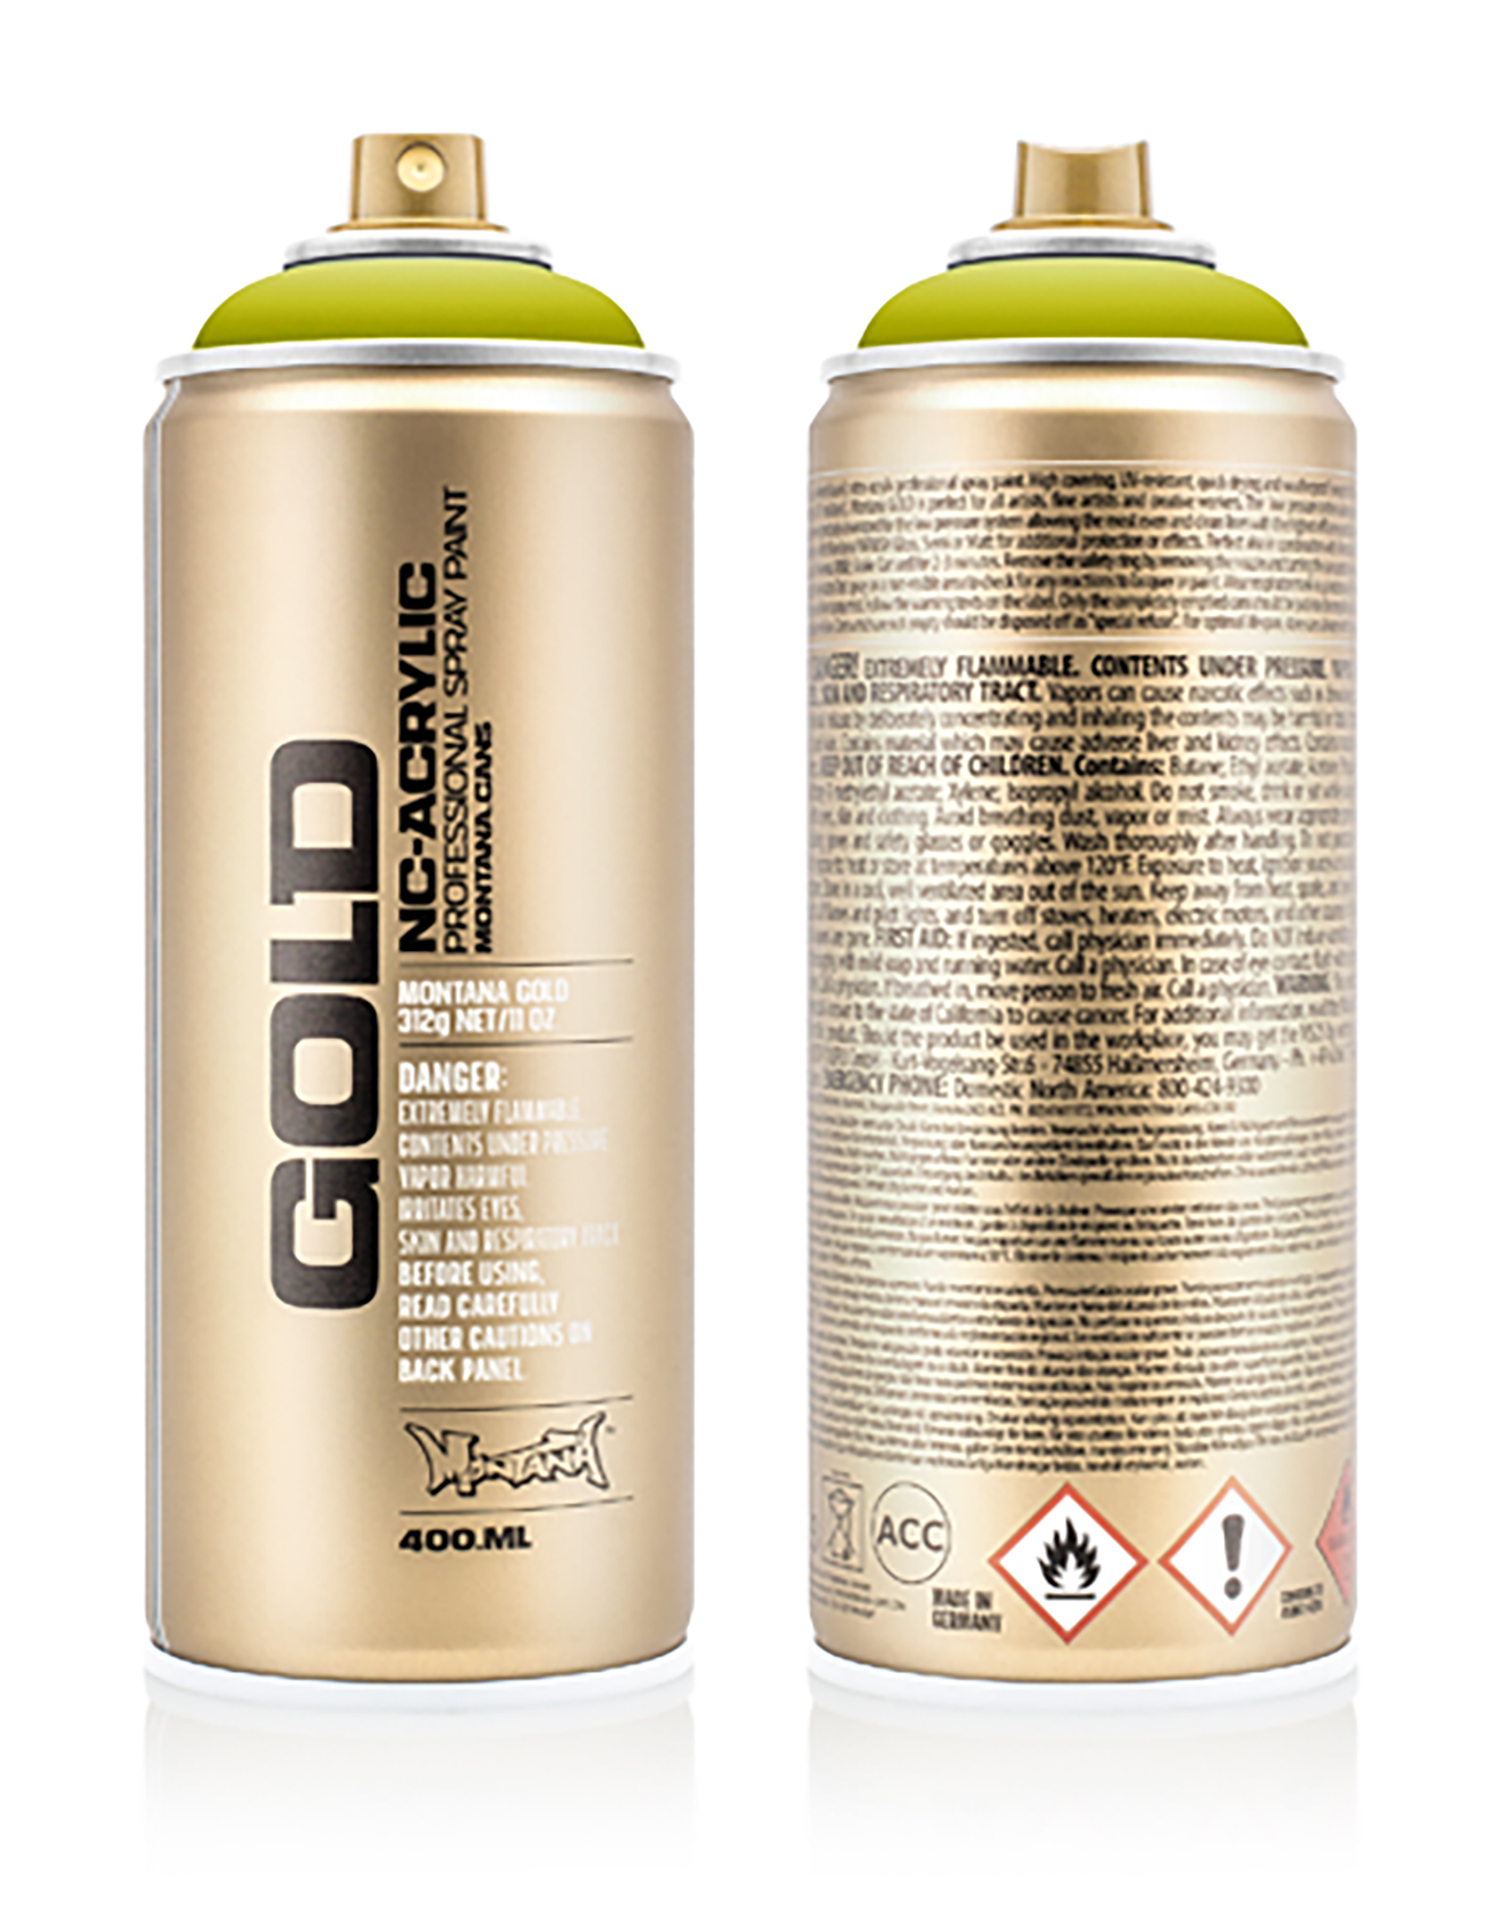 MONTANA-GOLD-SPRAY-400ML-G-1130